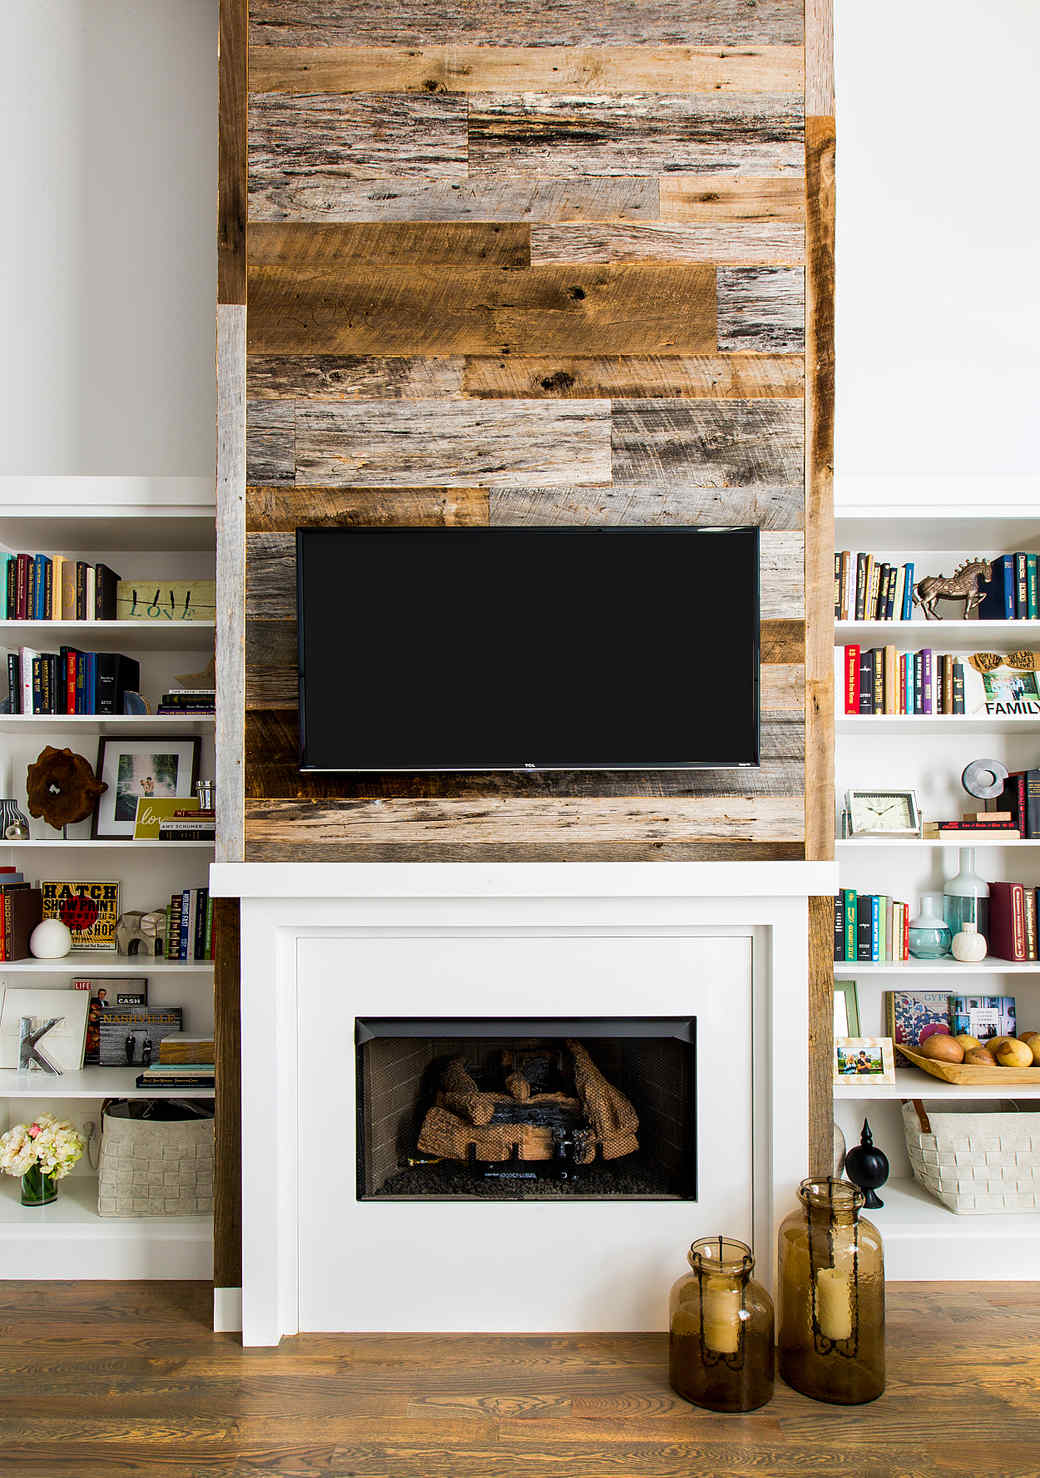 kelsea ballerini living room tv fireplace